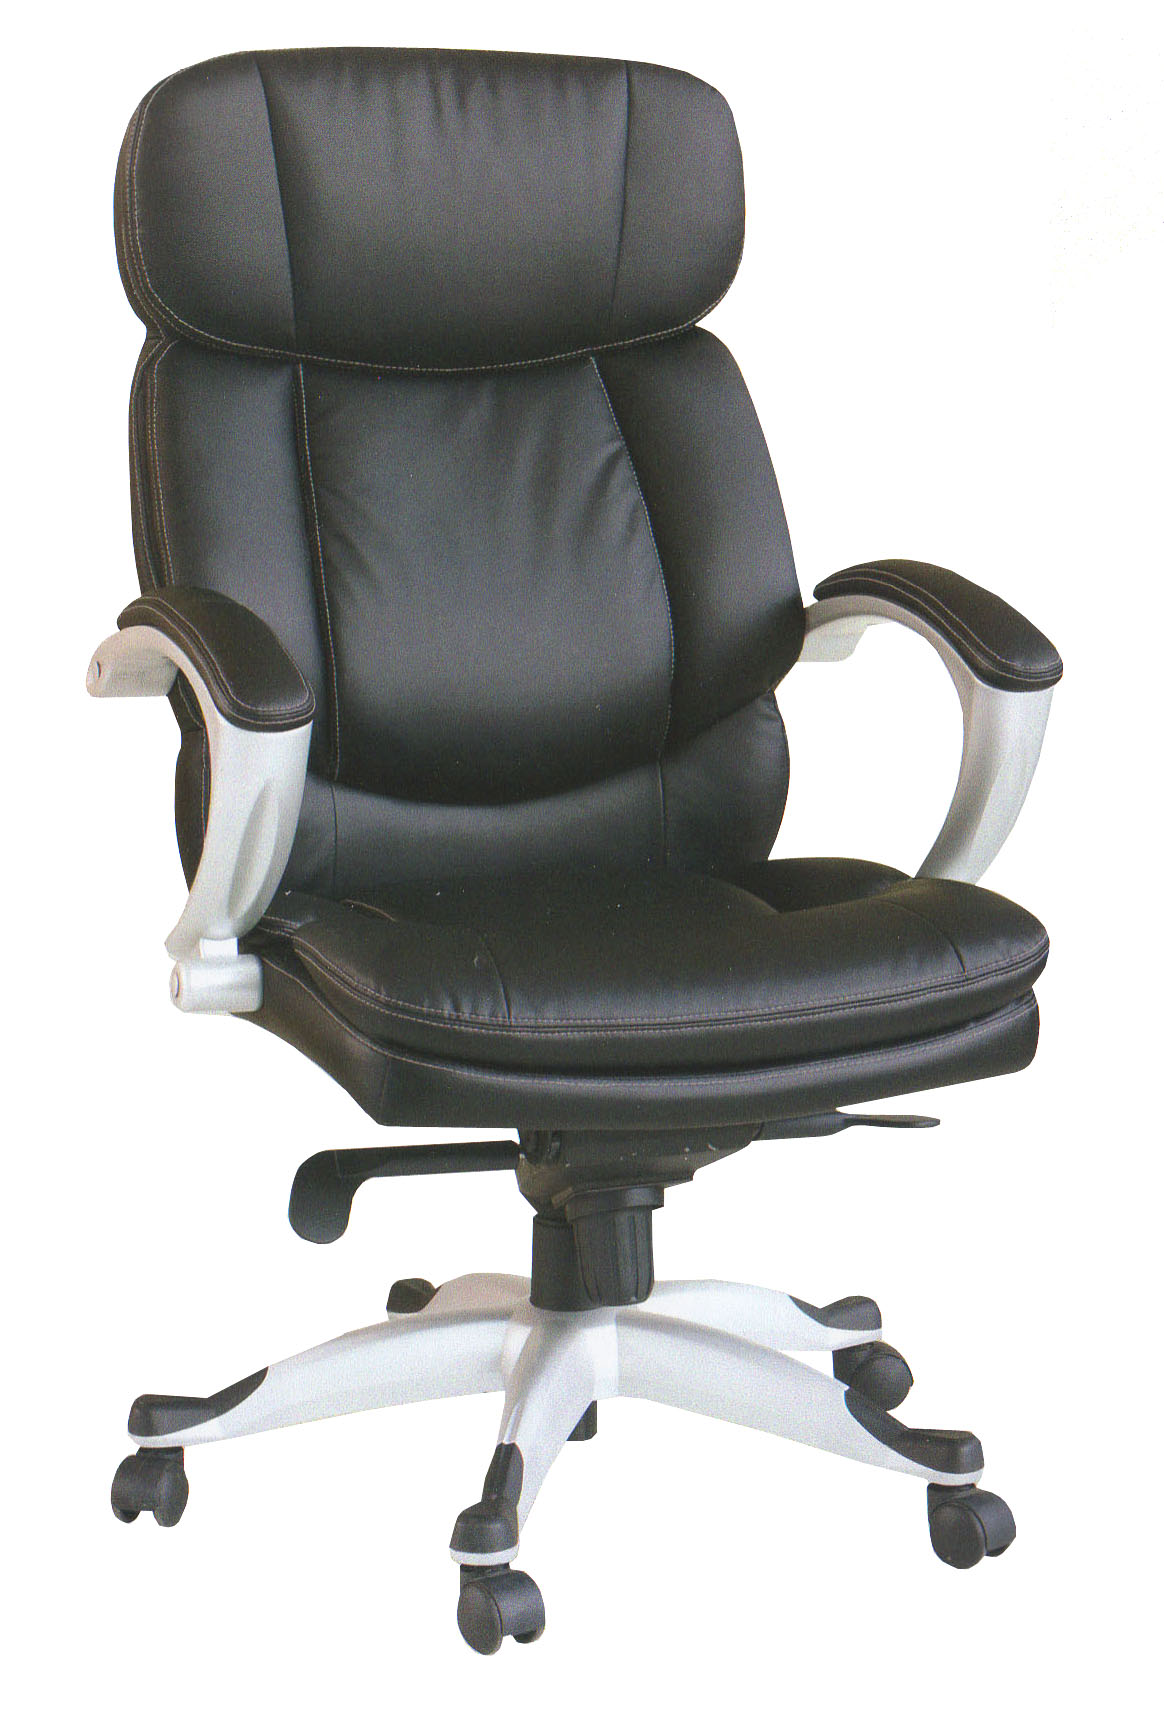 Comfortable Computer Chairs Bbs Harmonic Frequency Comfort Chairs Body Balance System